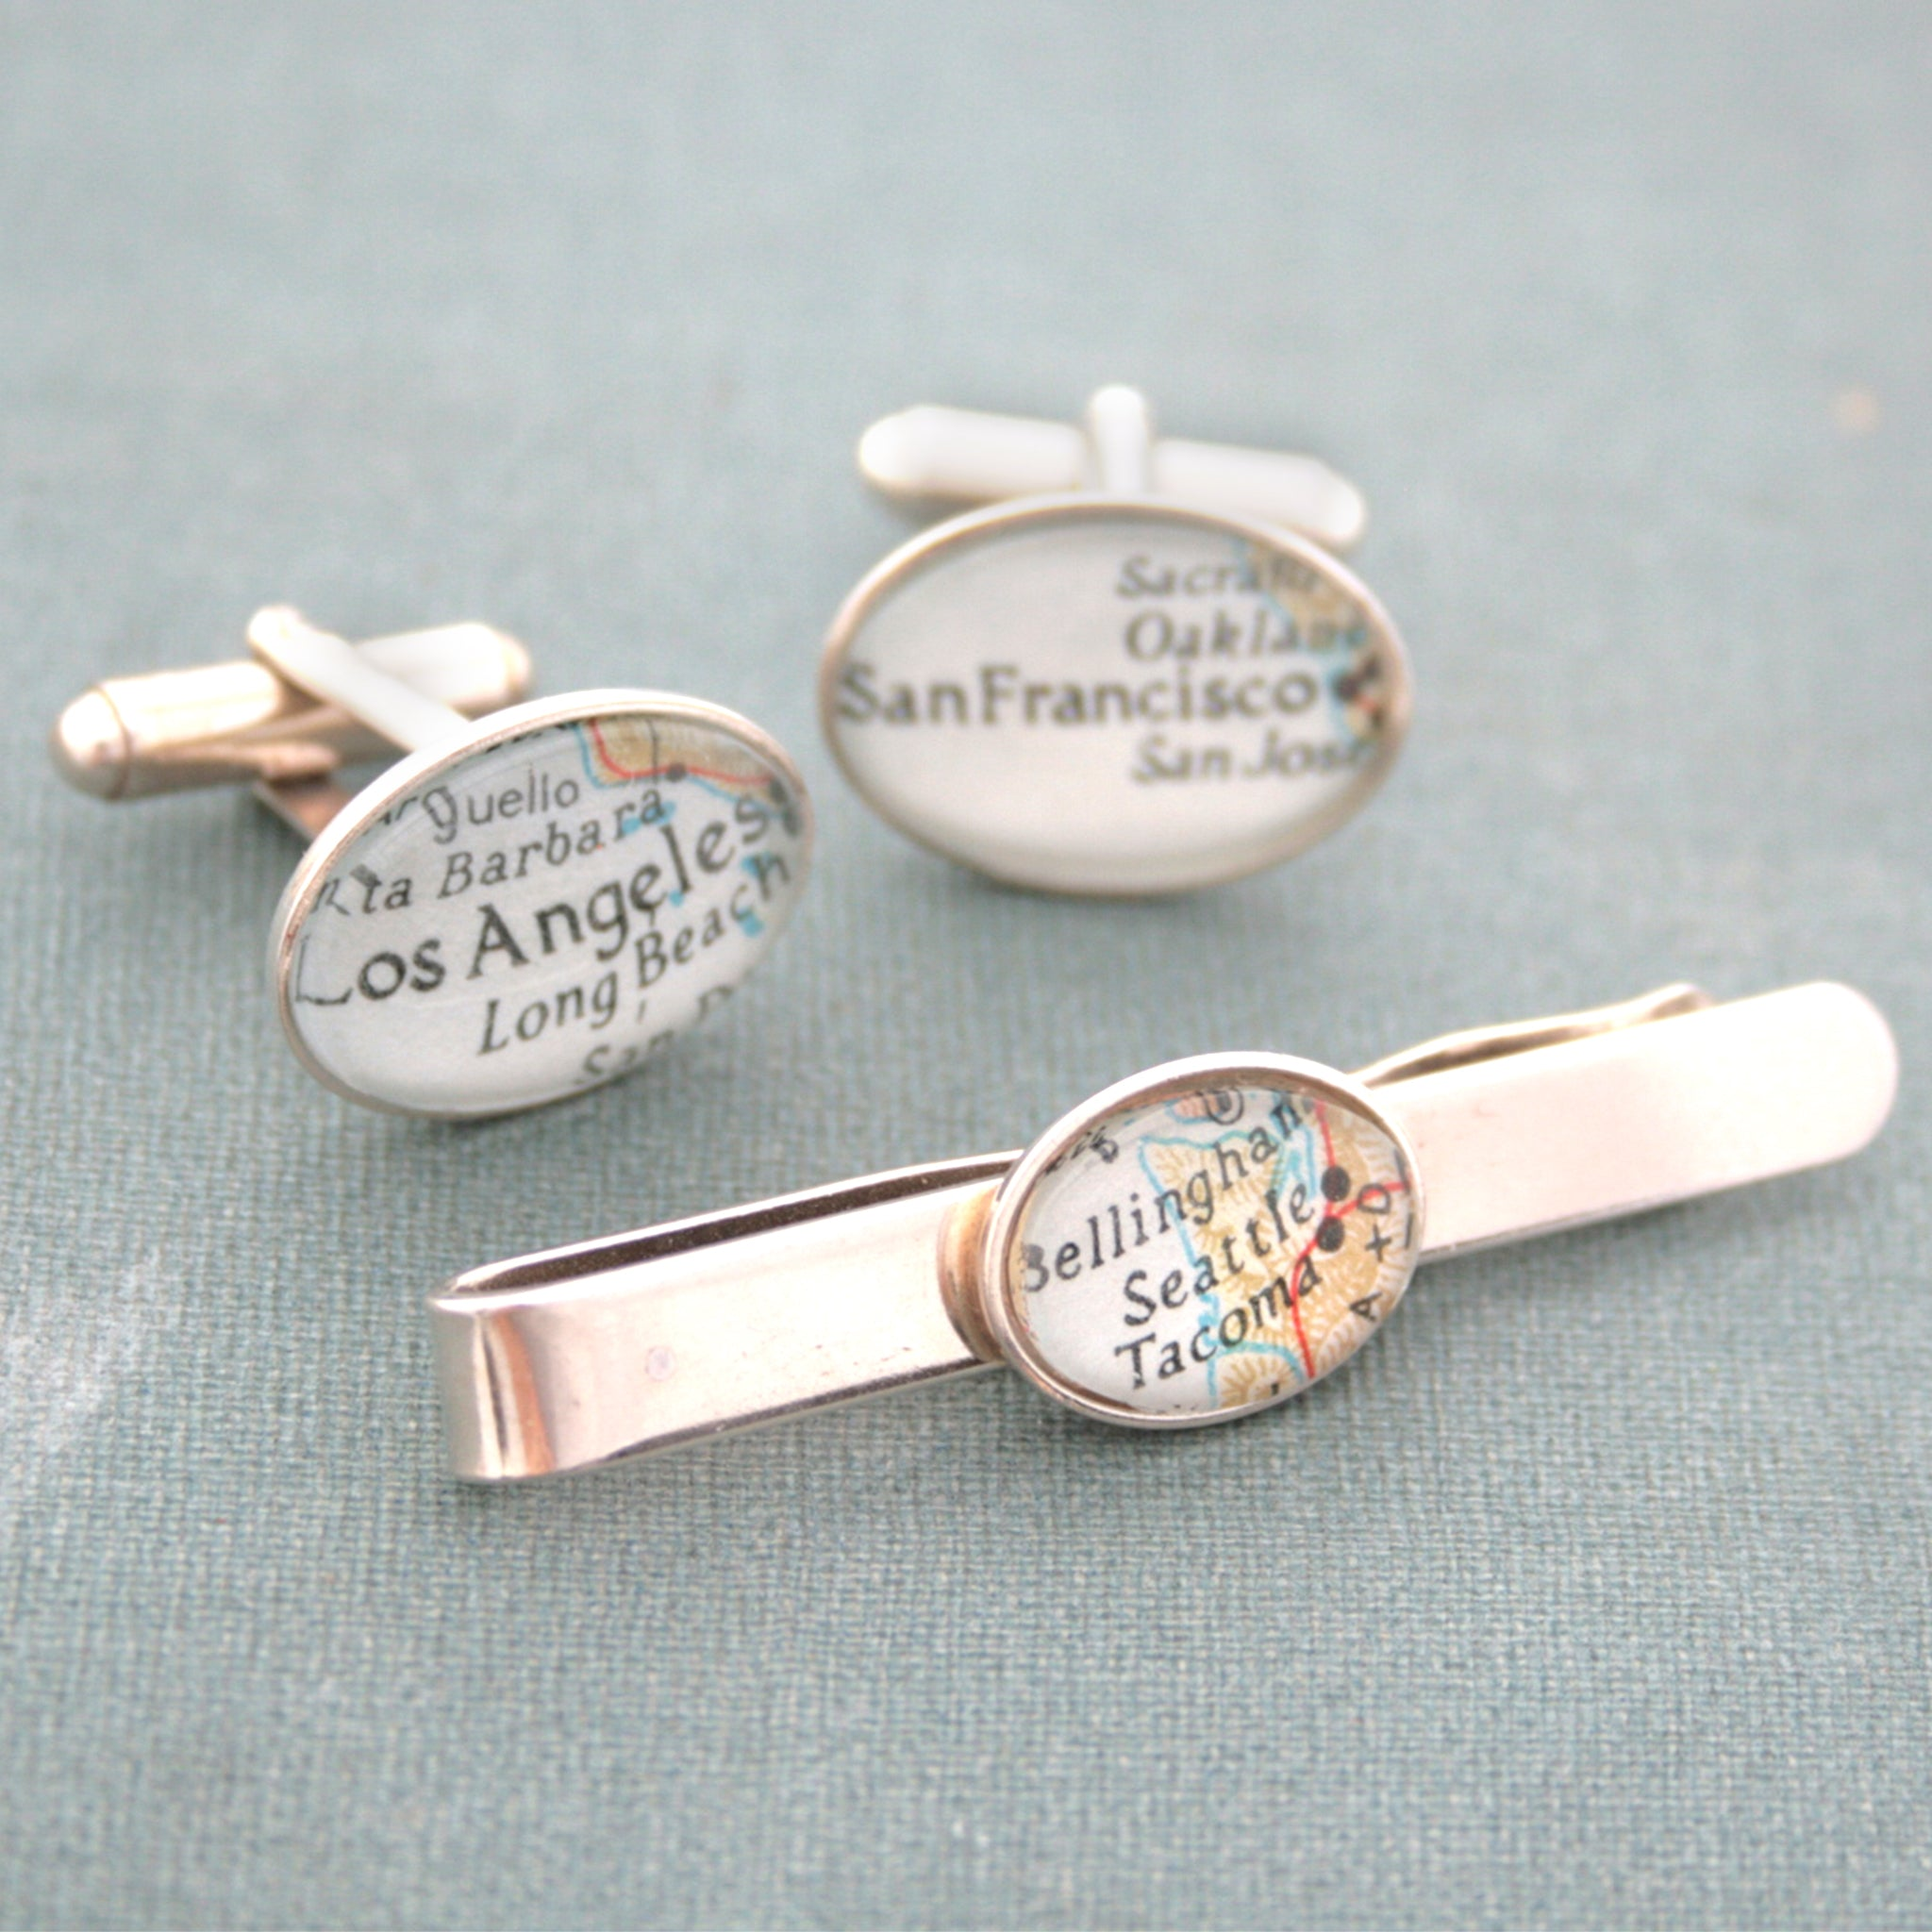 Sterling Silver Tie Clip and Cufflinks set featuring custom map locations